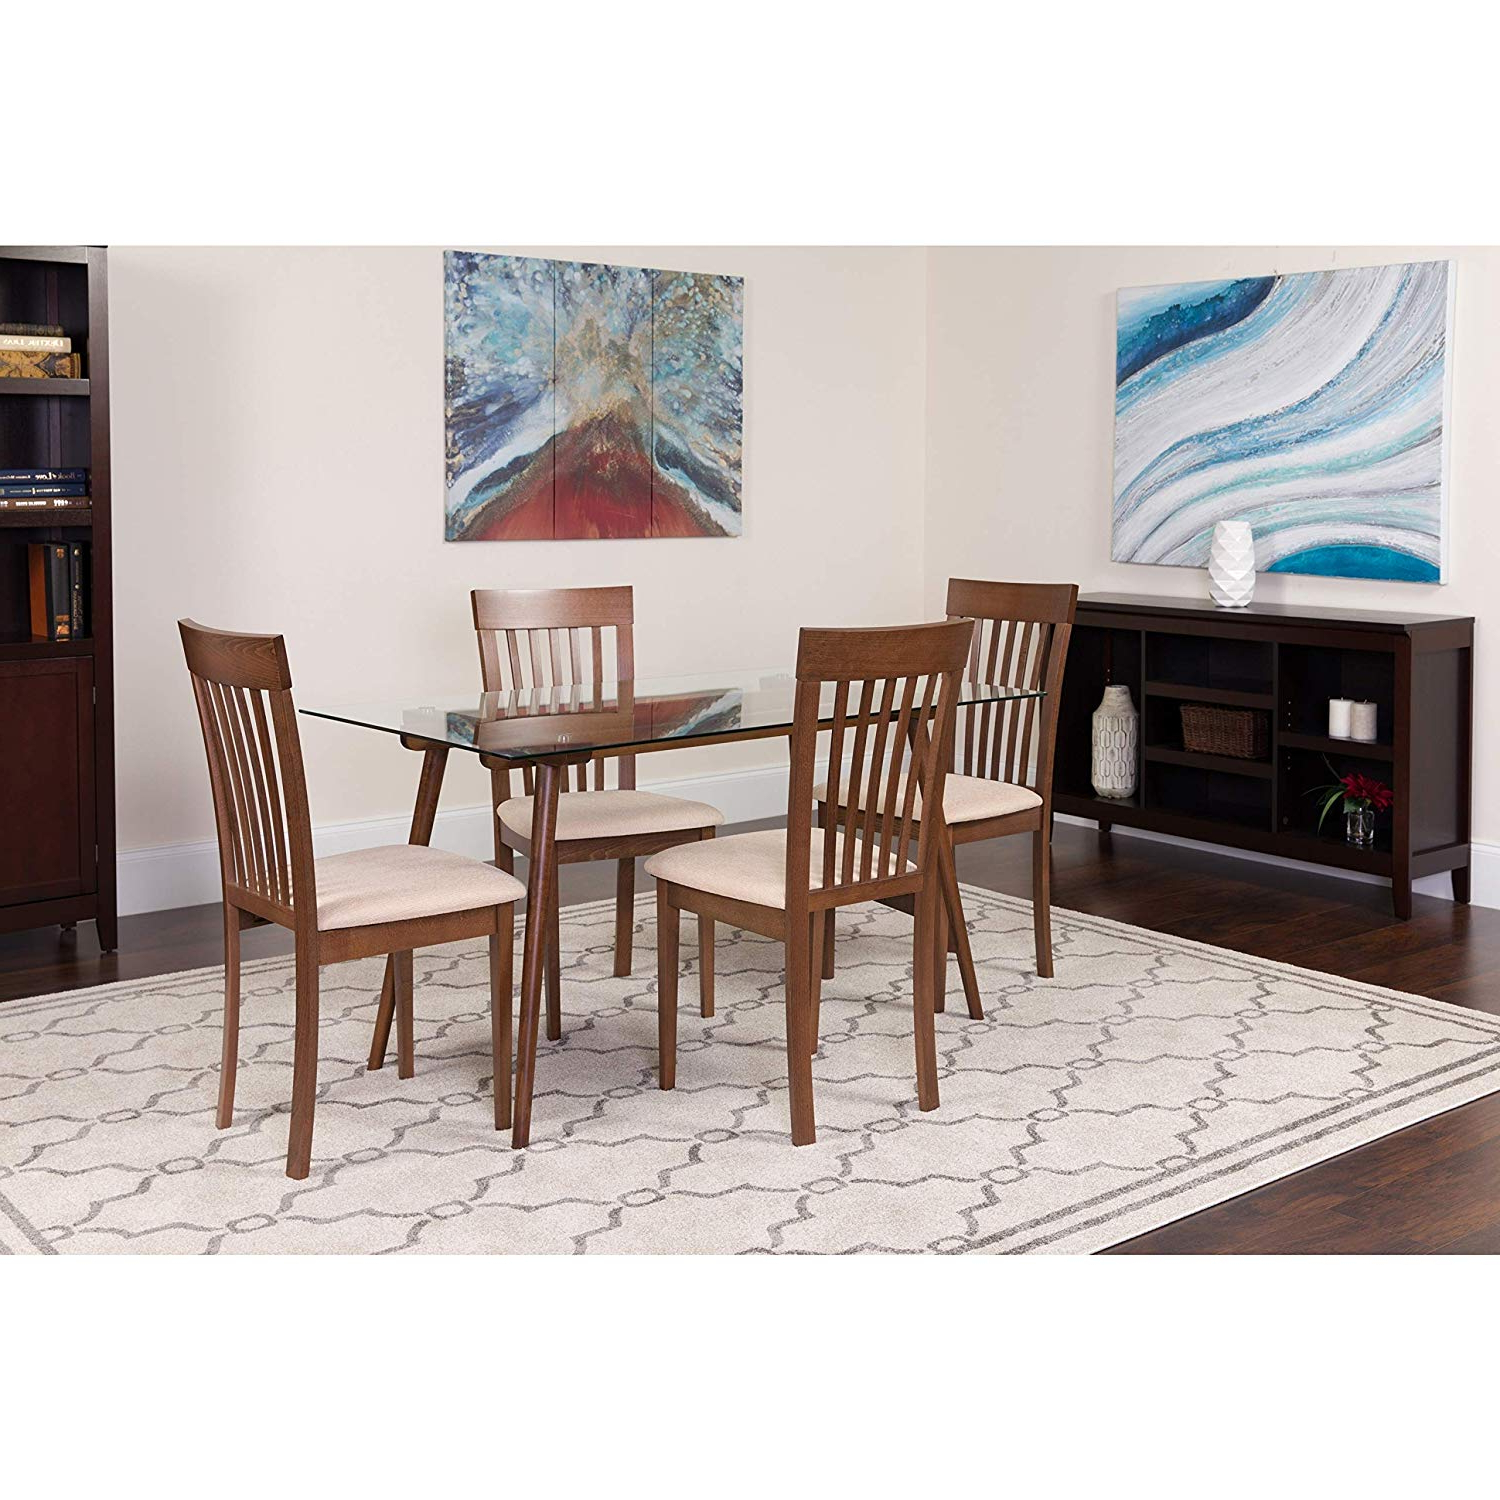 Espresso Finish Wood Classic Design Dining Tables Within Trendy Cheap Windsor Wood Chairs, Find Windsor Wood Chairs Deals On (View 9 of 17)